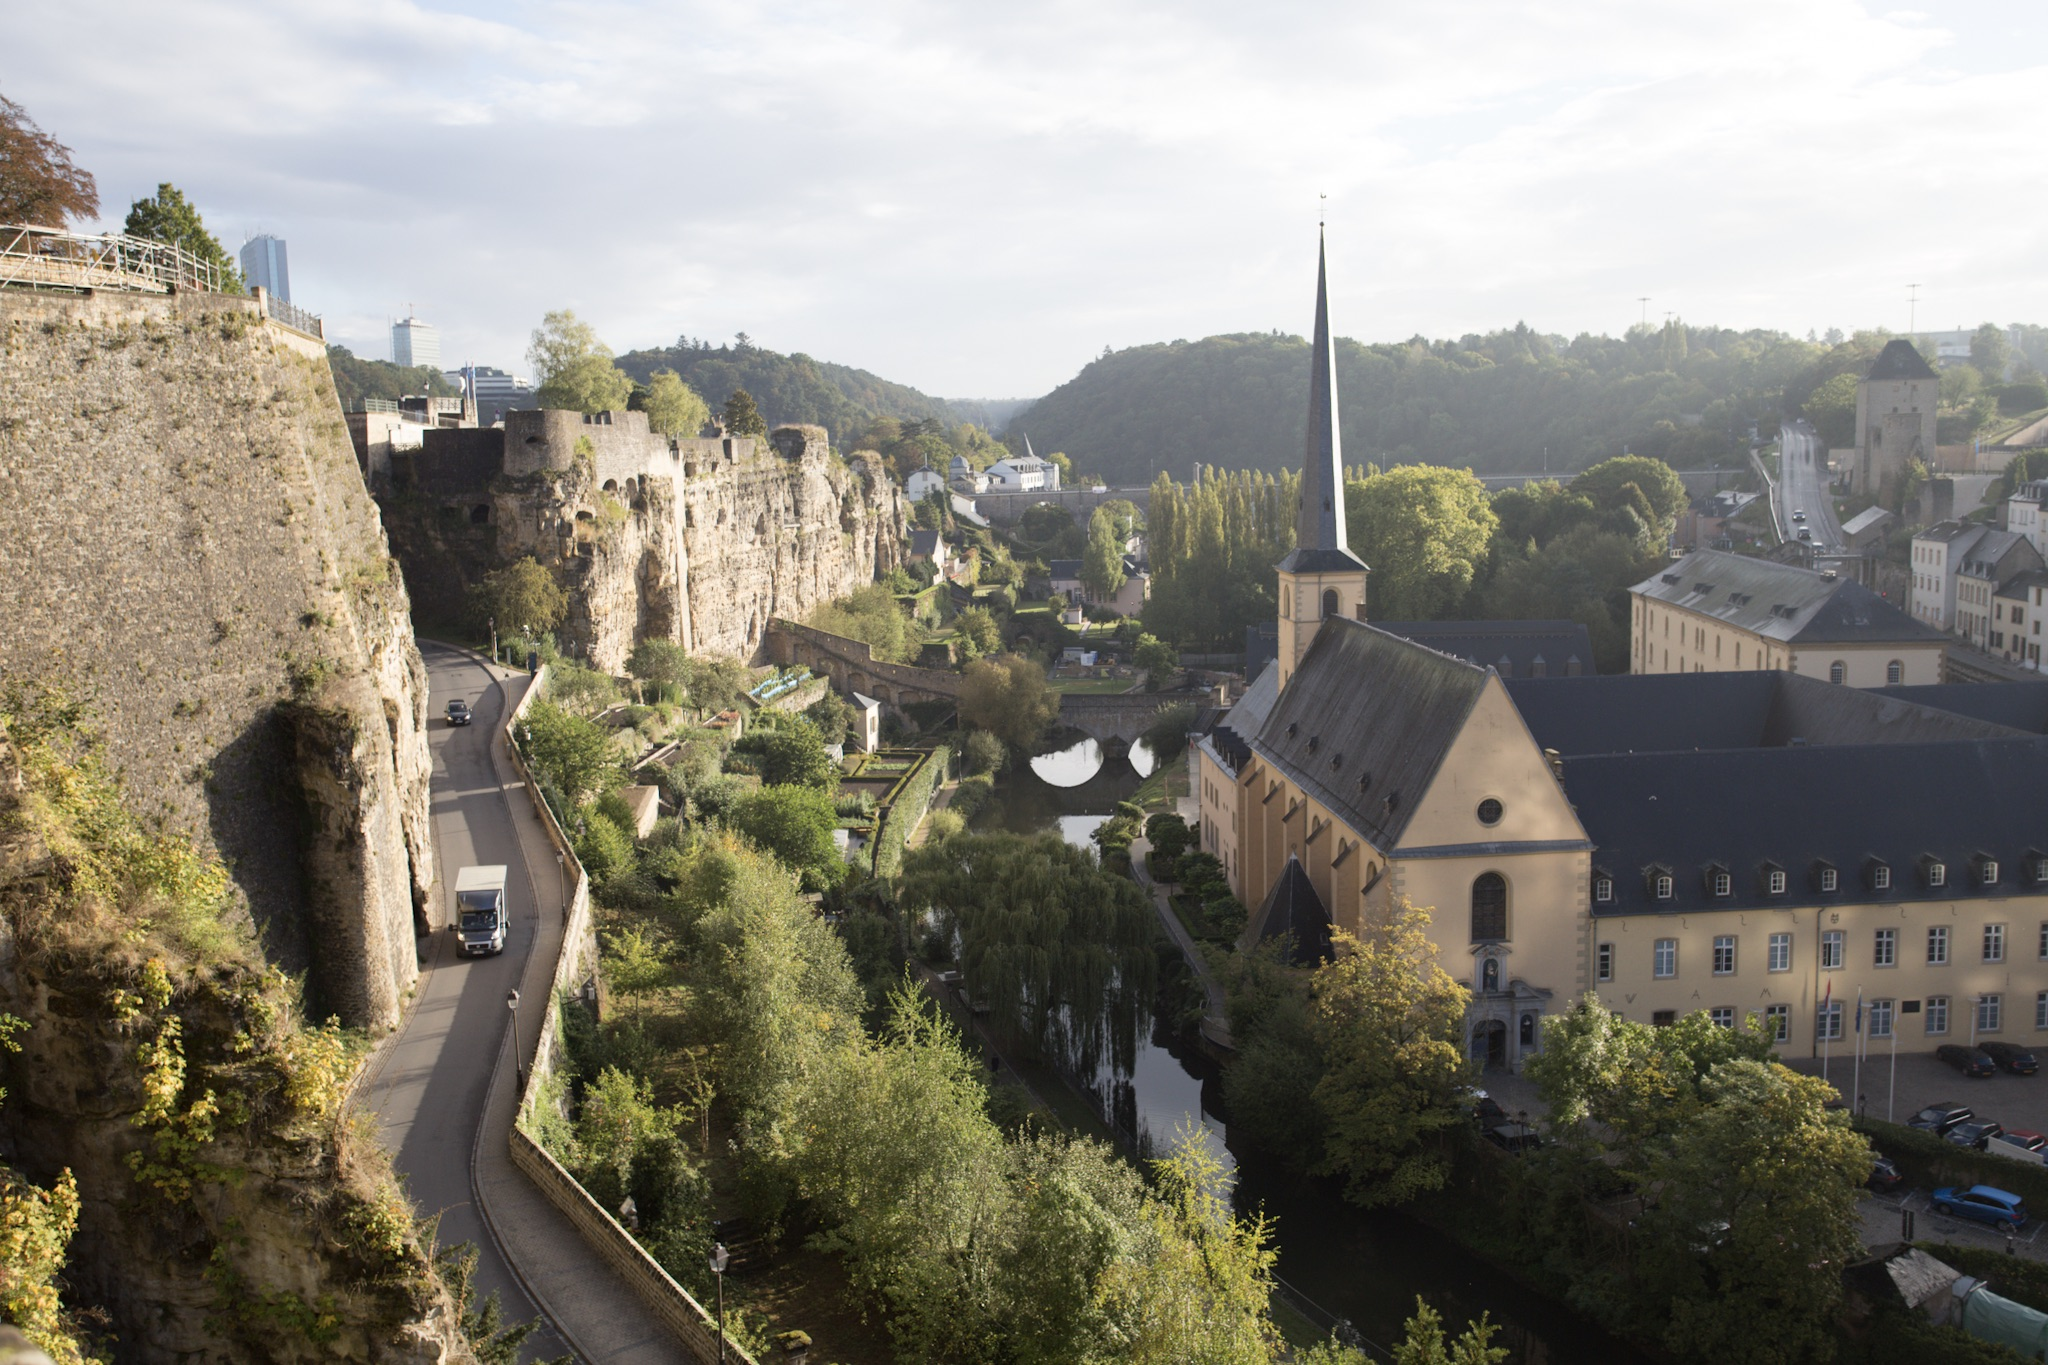 The Grund, an abbey and river in front of the casemates in the cliffs.